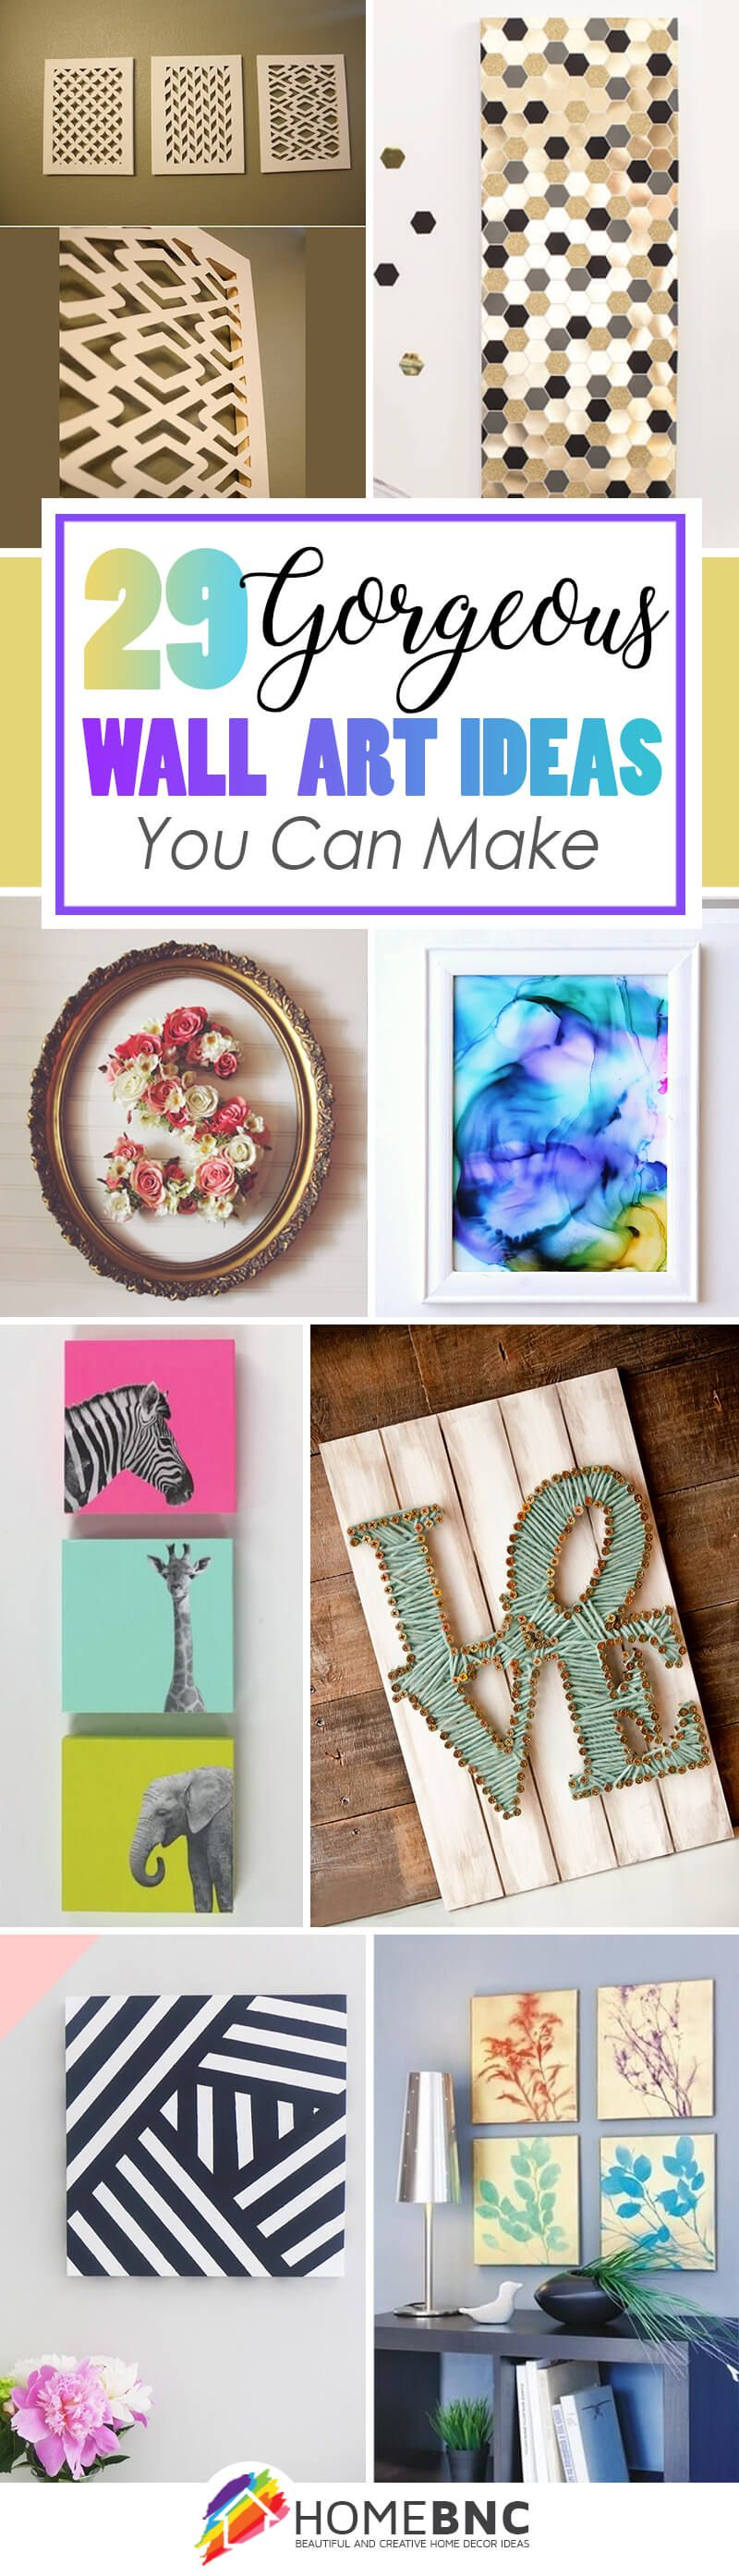 easy diy wall art ideas to make your home more stylish diy wall